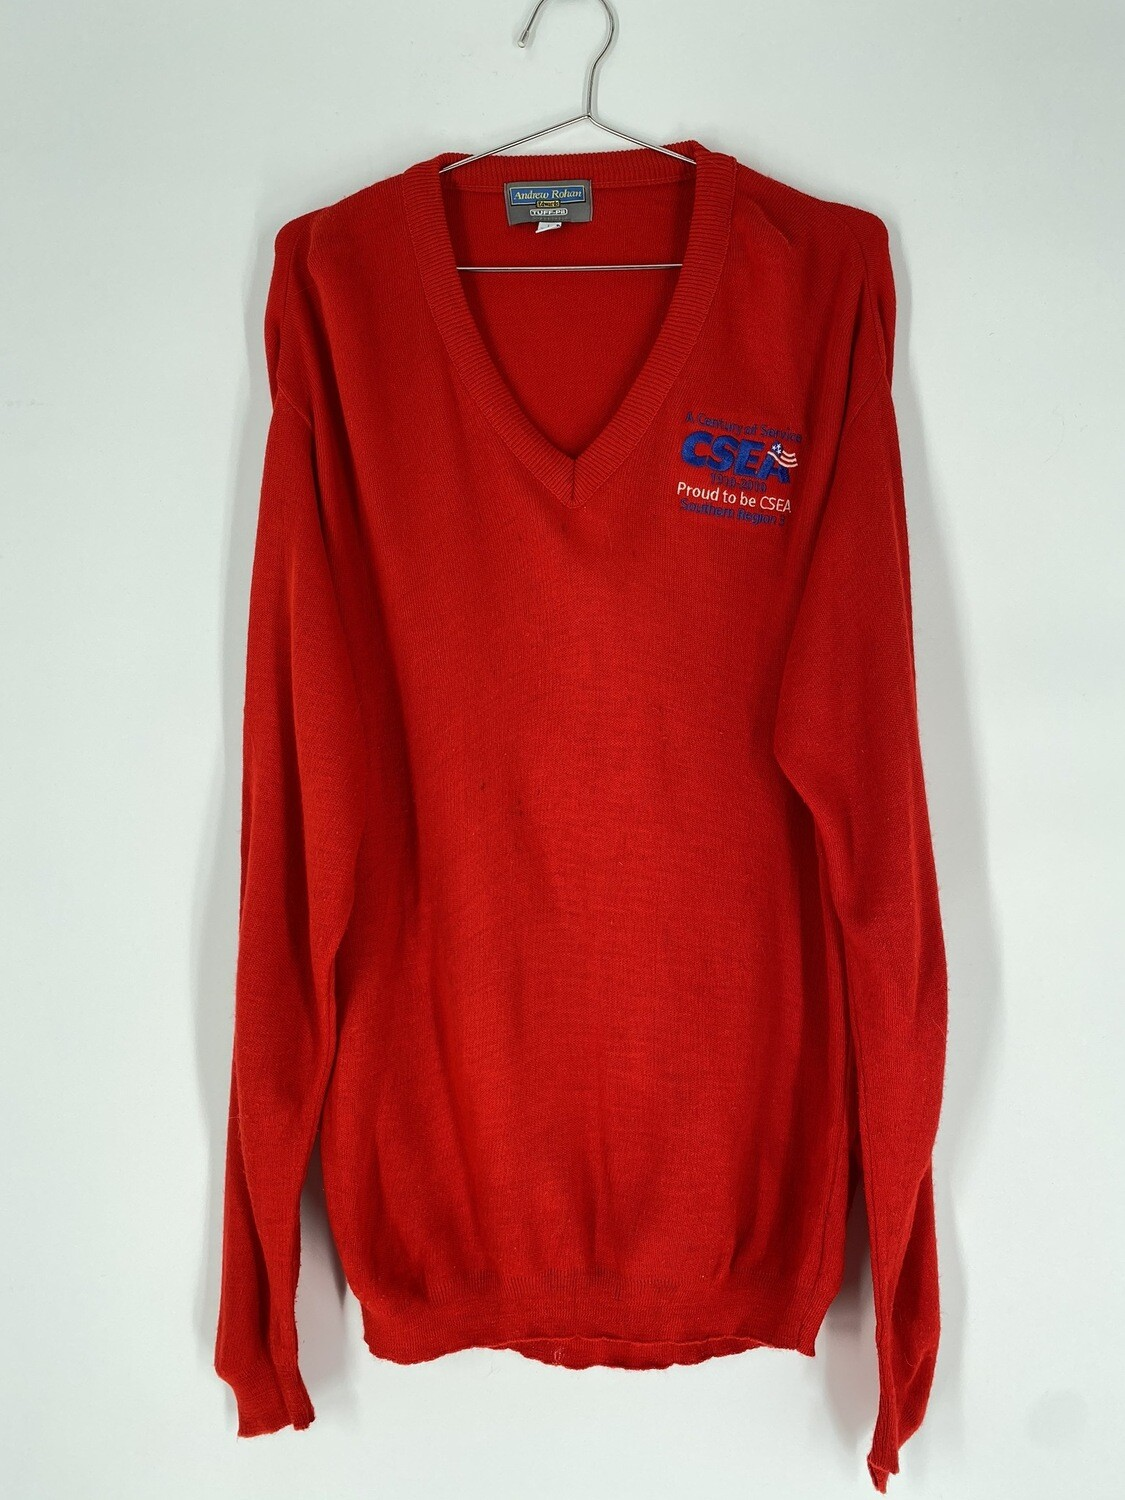 Red Embroidered Sweater Size L